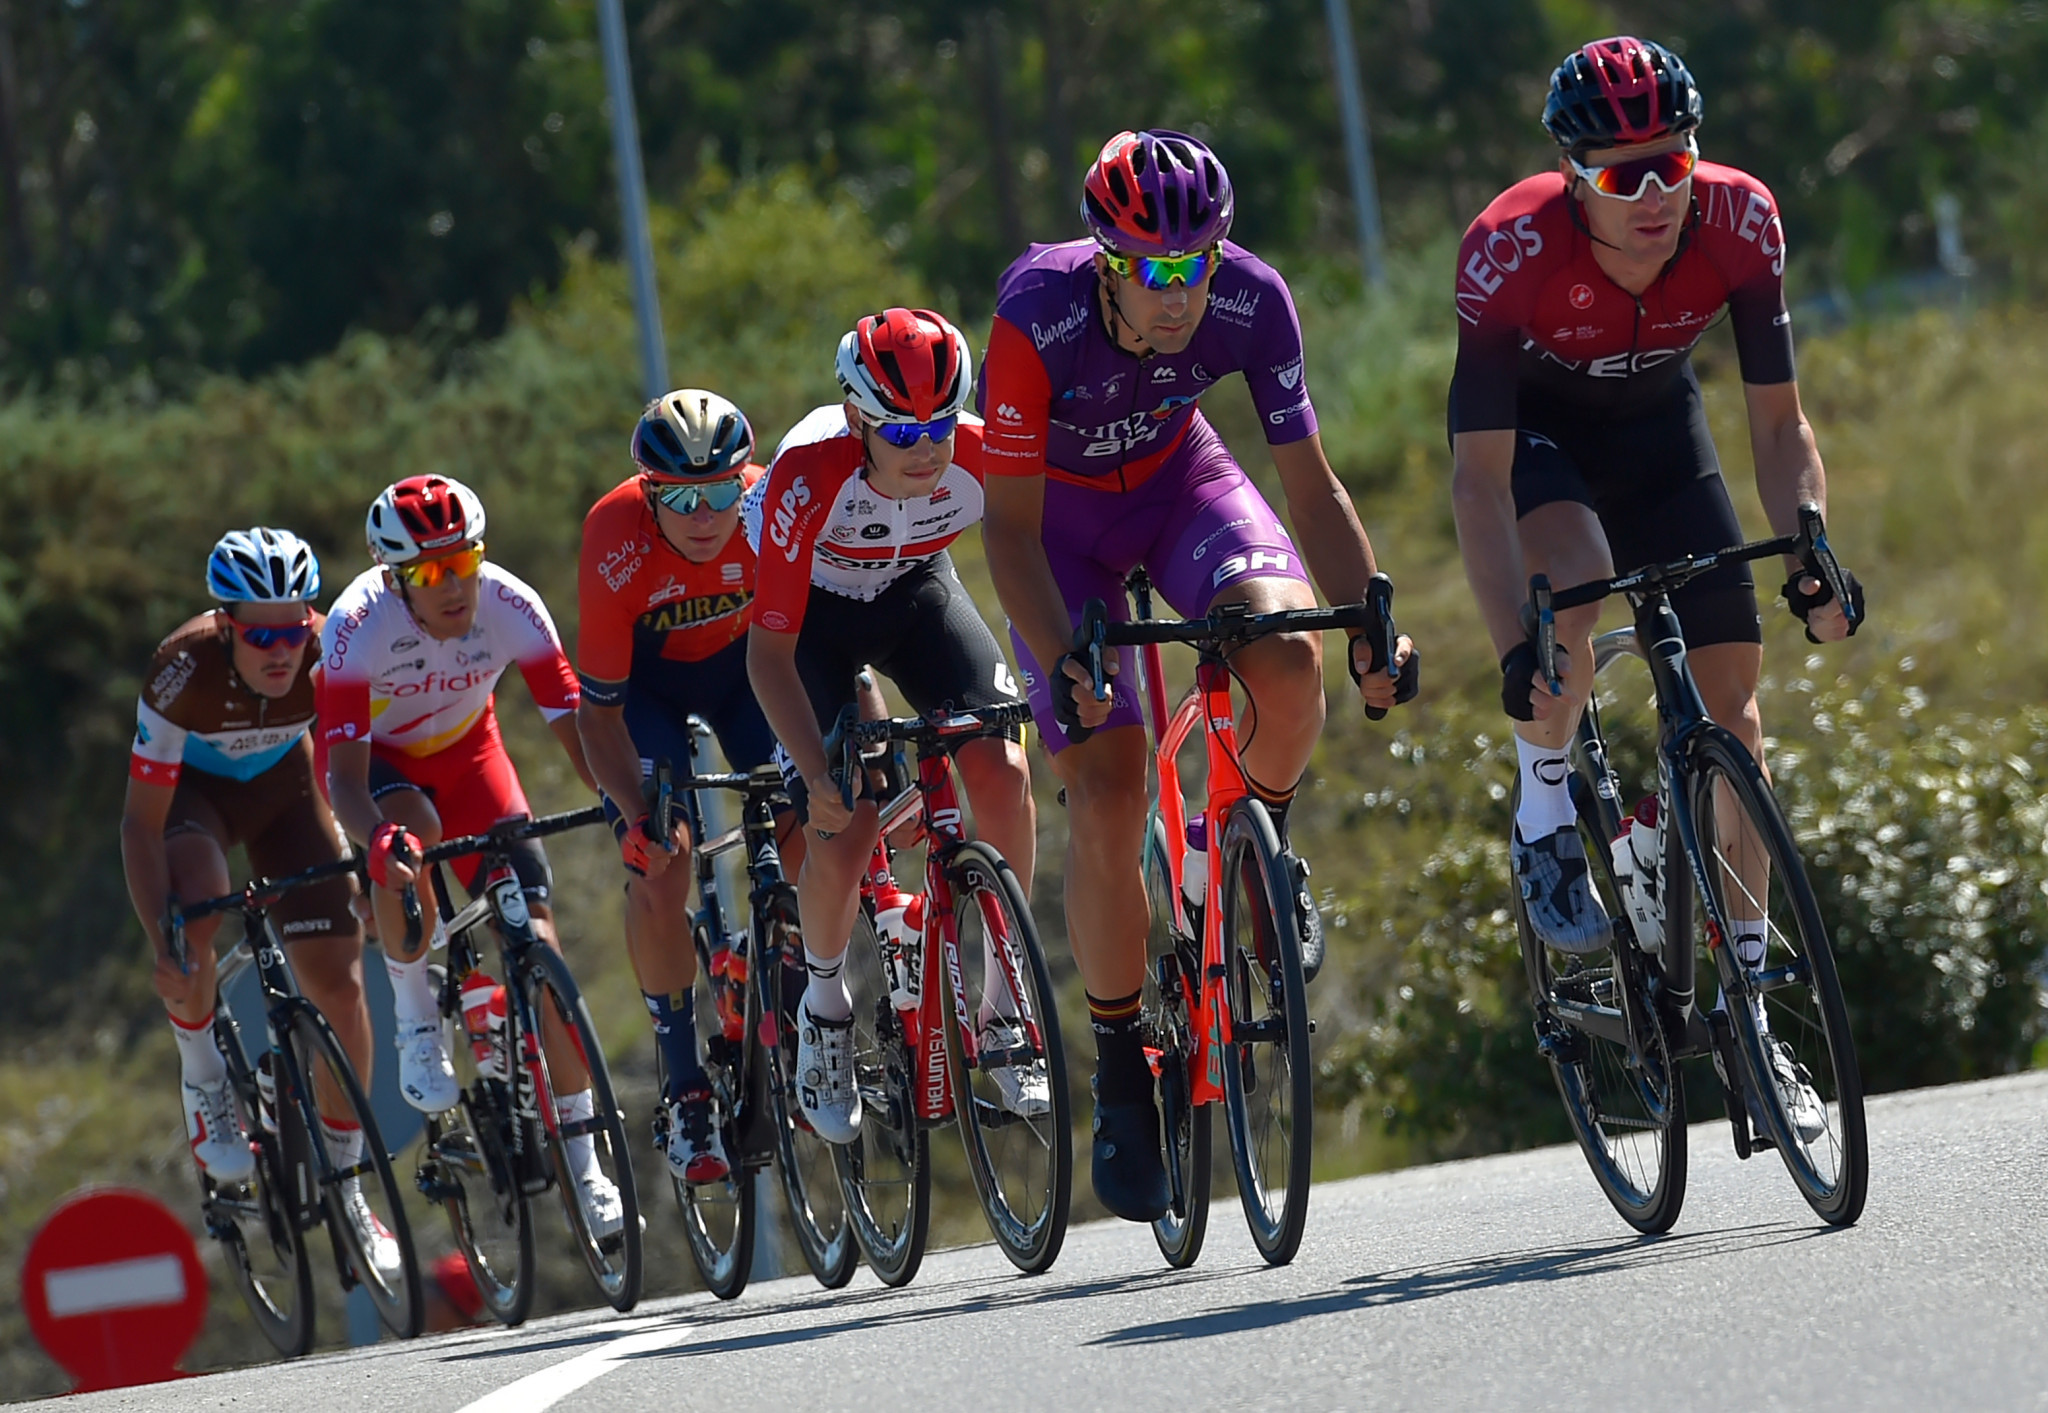 This year's Vuelta a España will not enter Portugal ©Getty Images